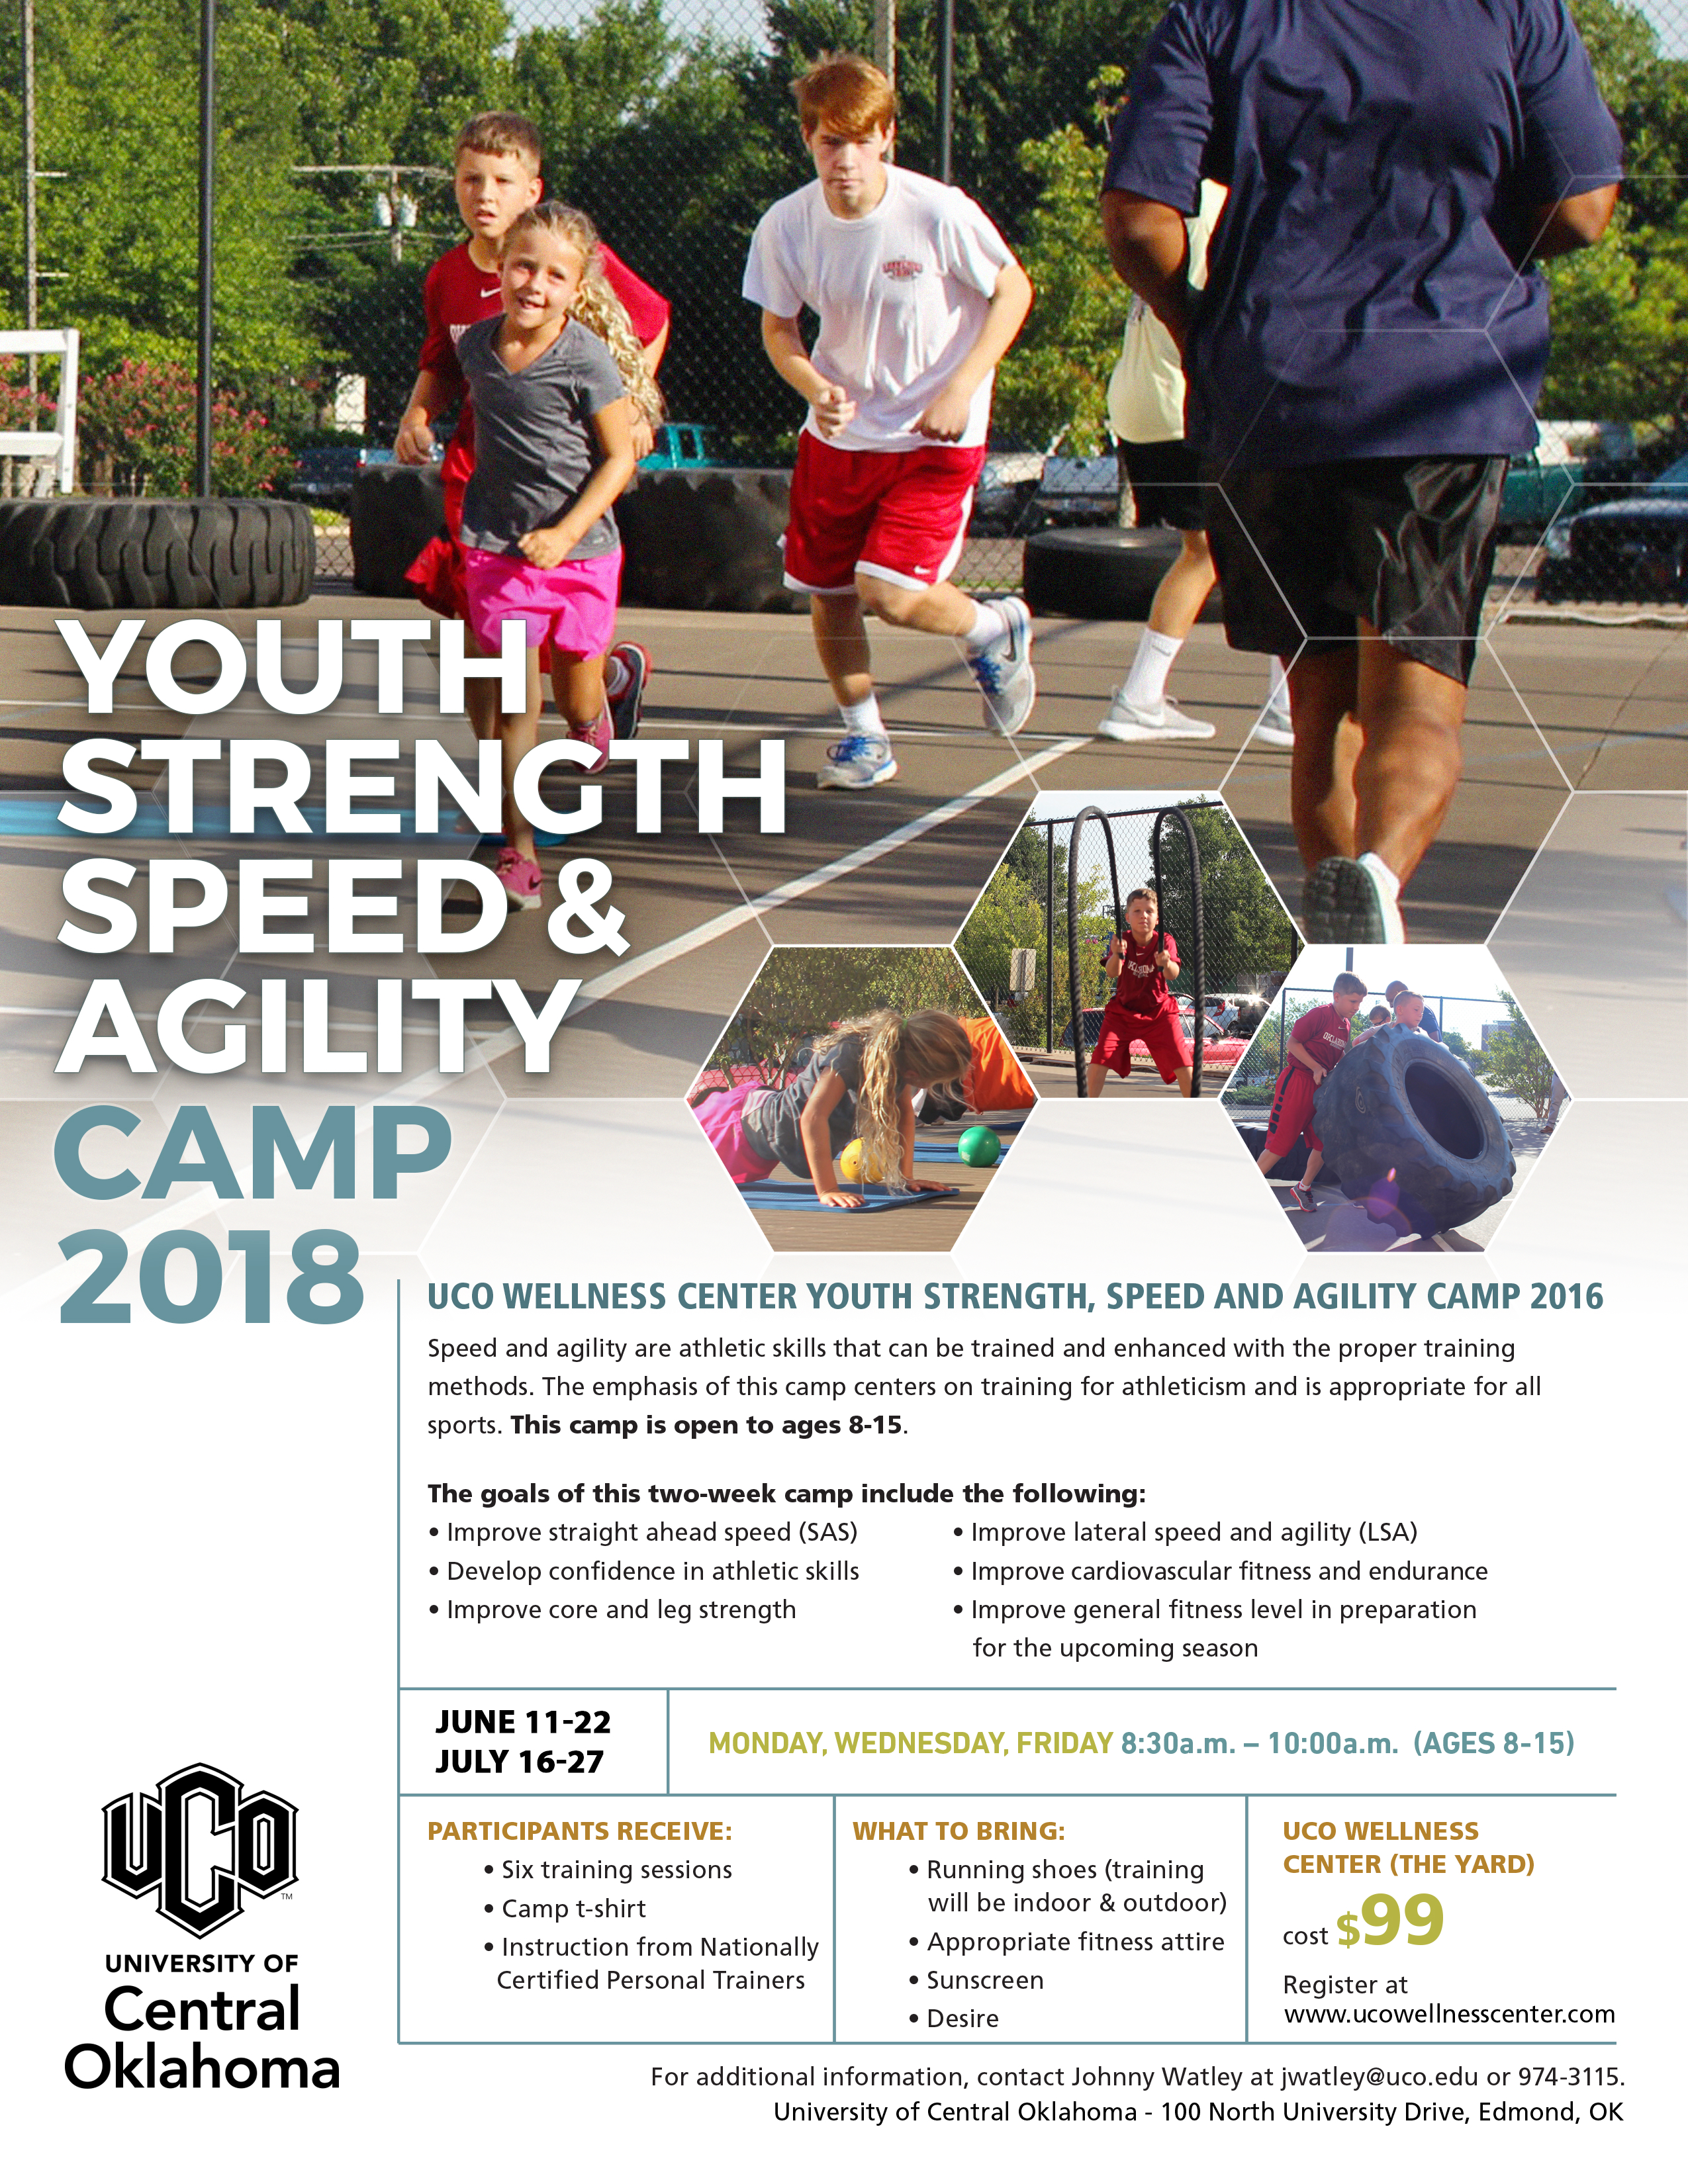 Youth Strength, Speed & Agility Camp June 11-22, 2018